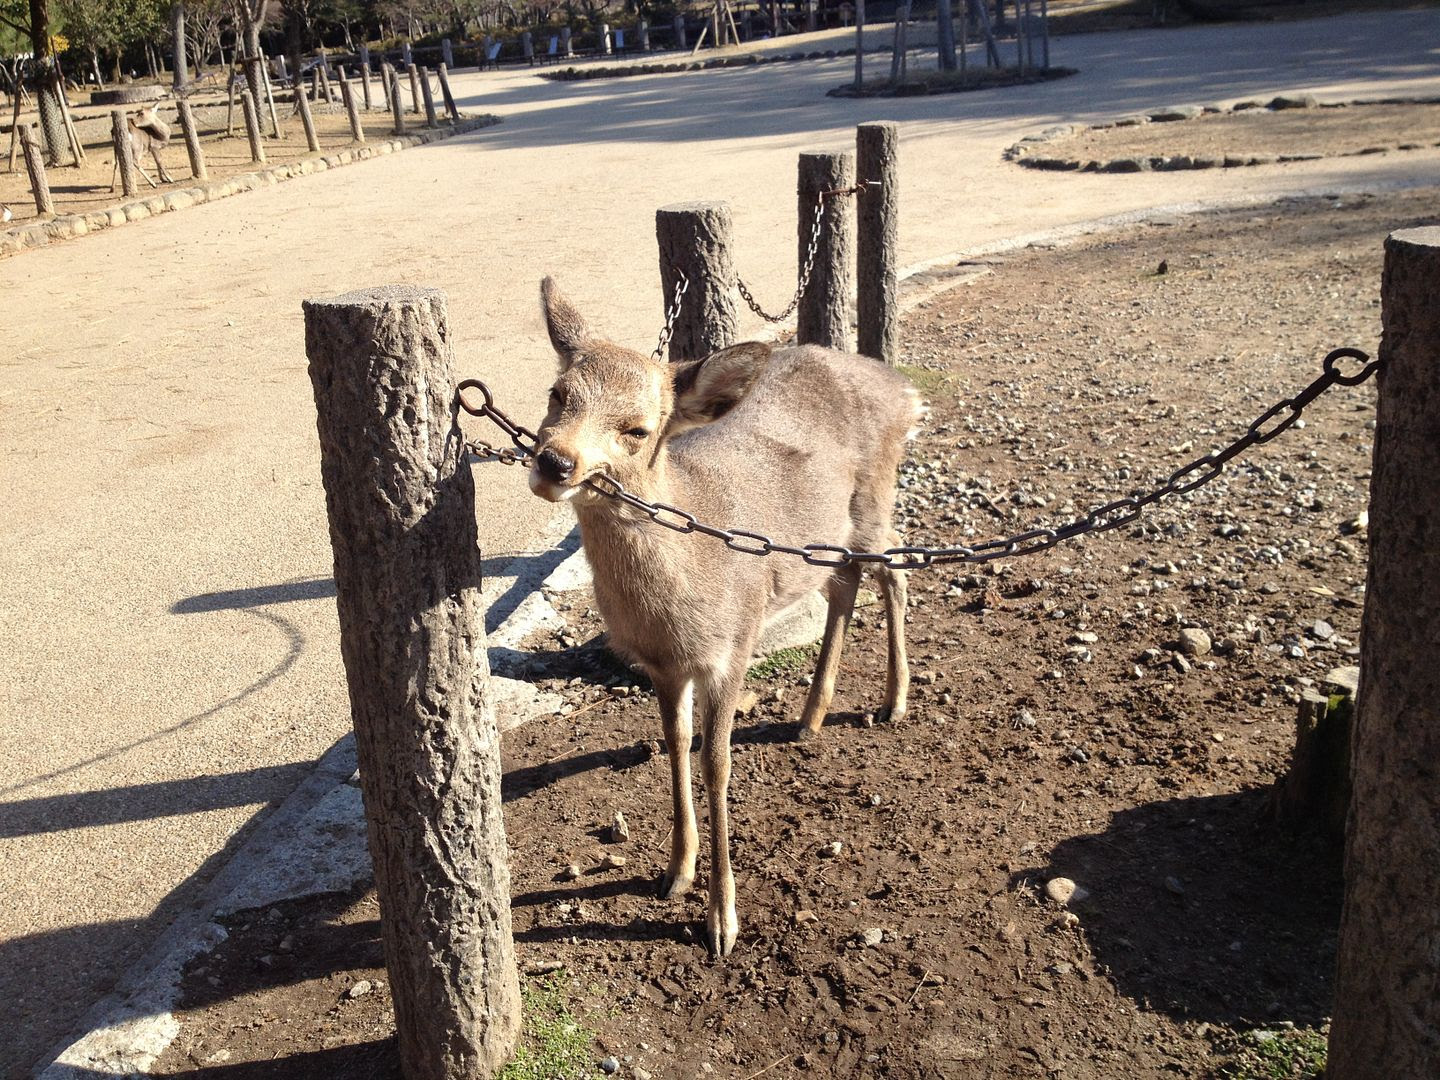 Deer biting a chain in Nara, Japan photo 2013-12-23095131_zpsb7b38c0b.jpg